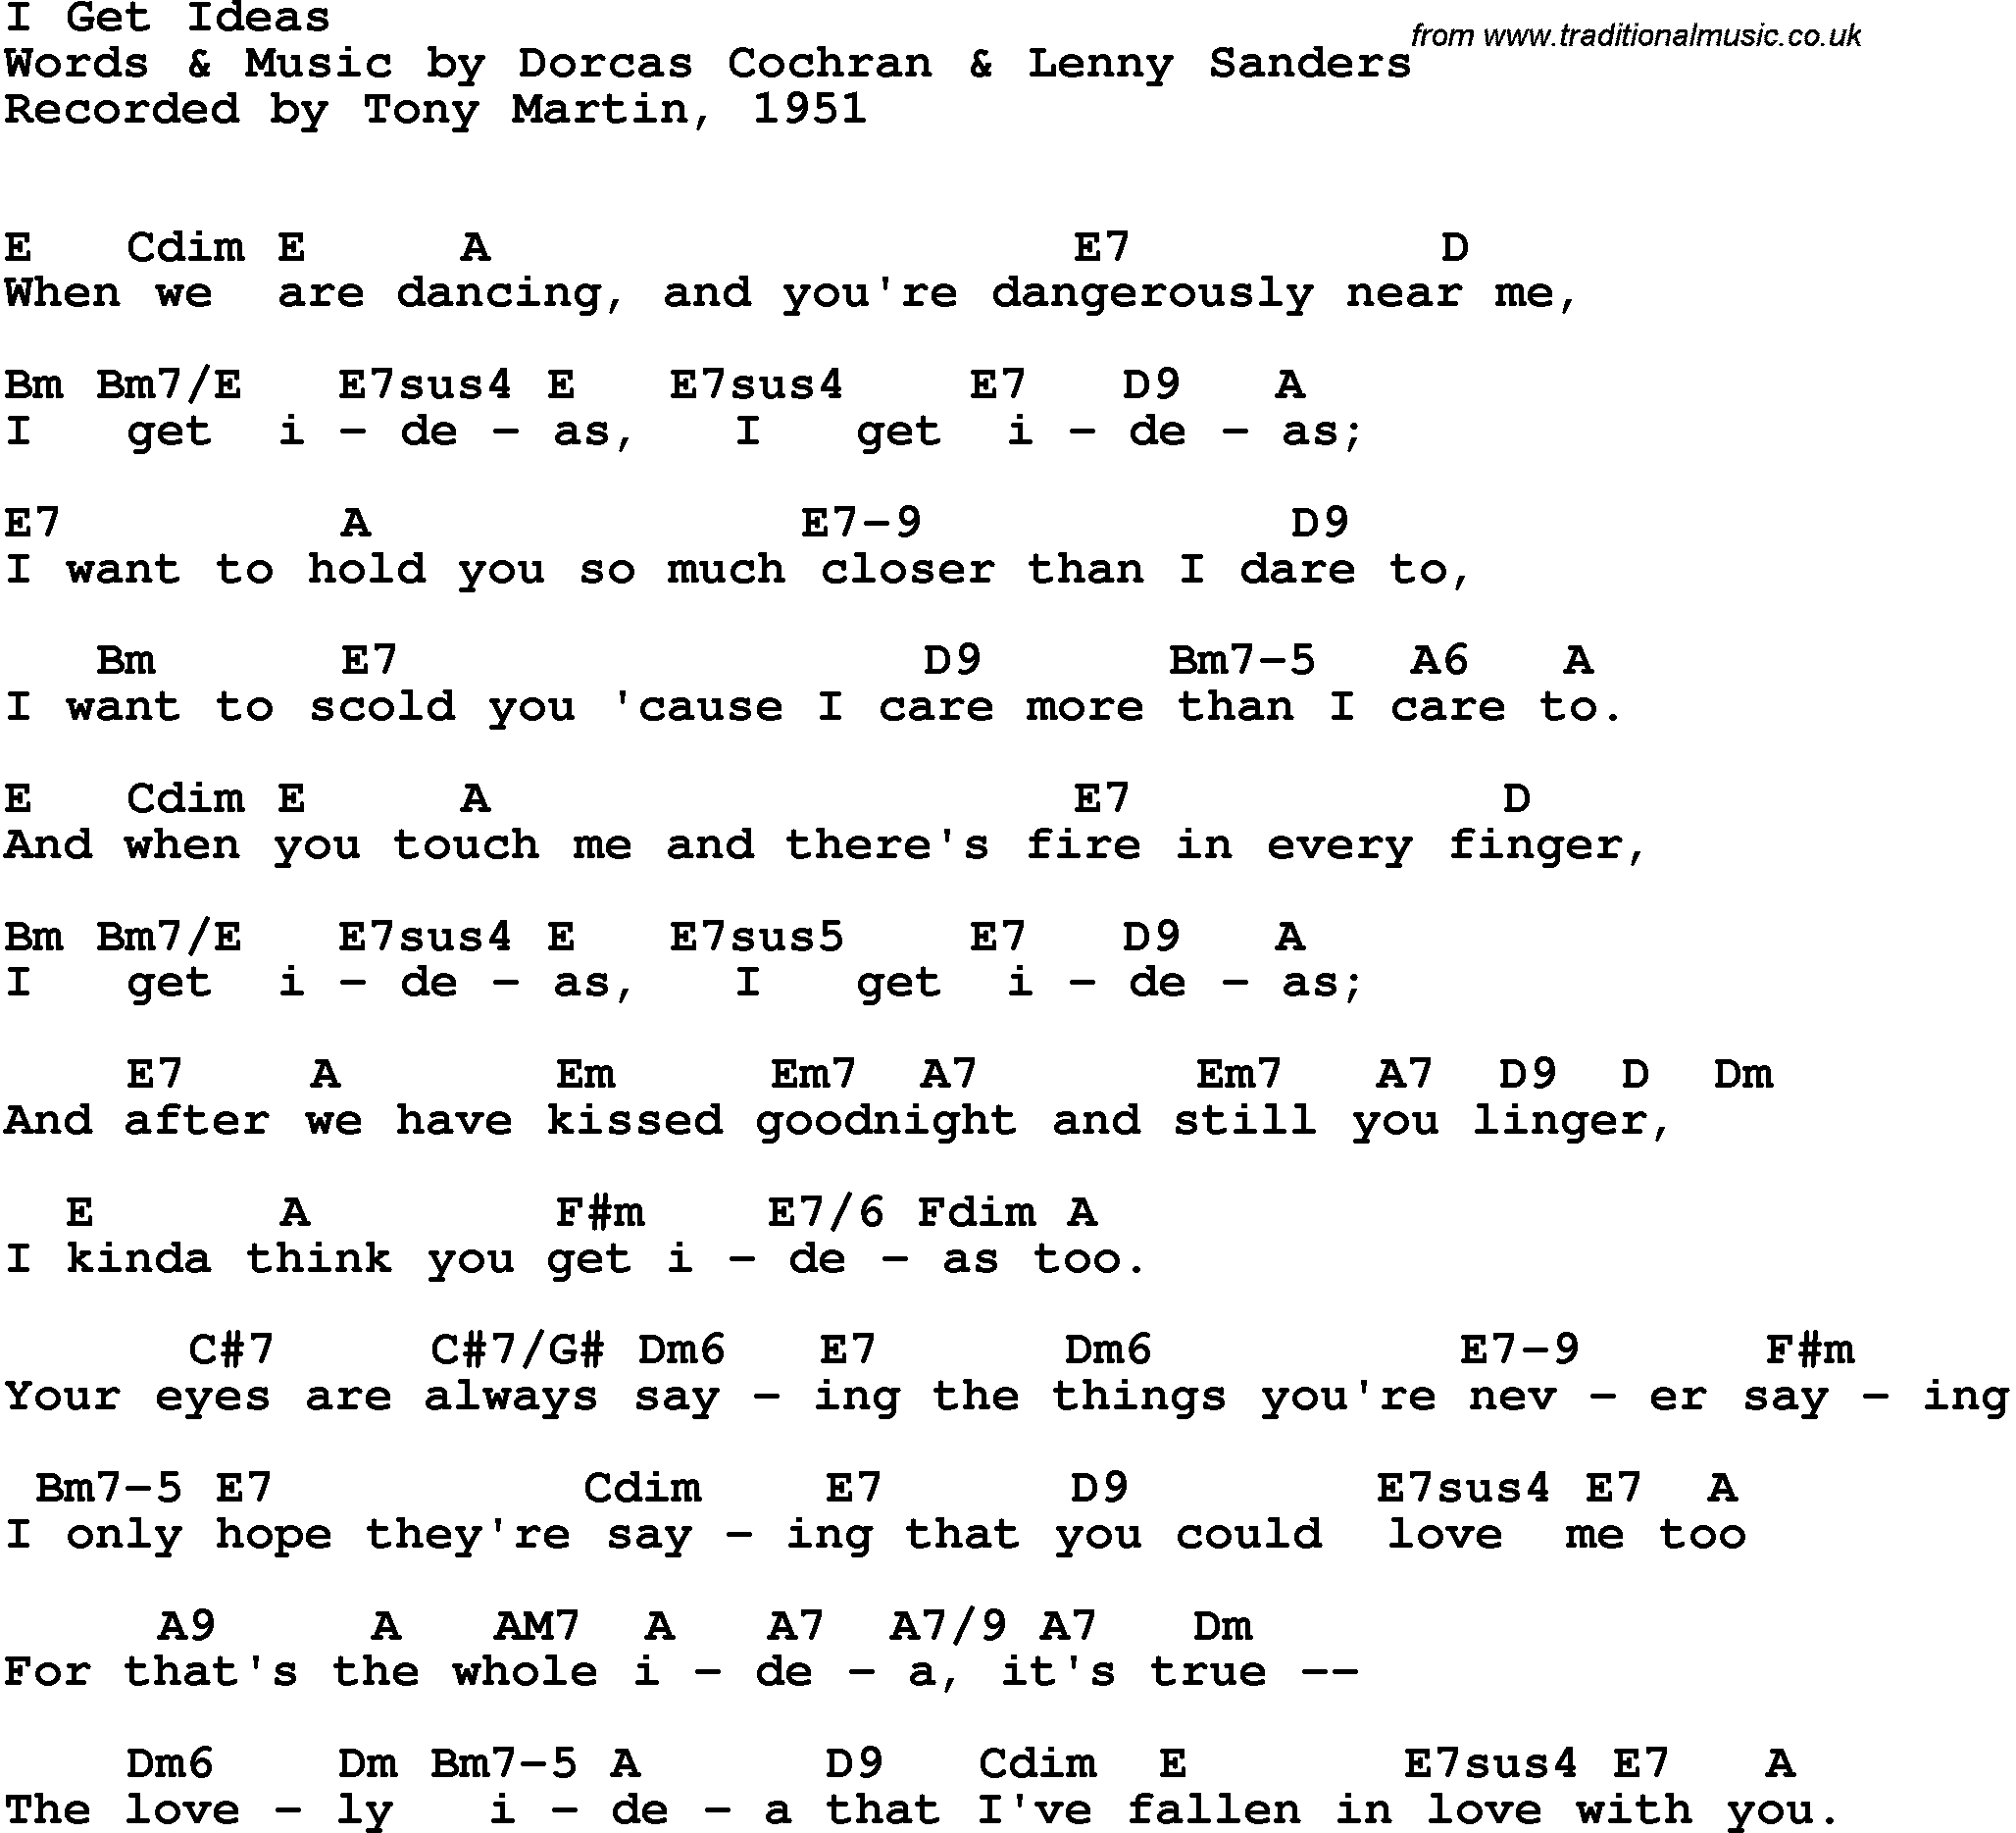 Song lyrics with guitar chords for I Get Ideas - Tony Martin, 1951